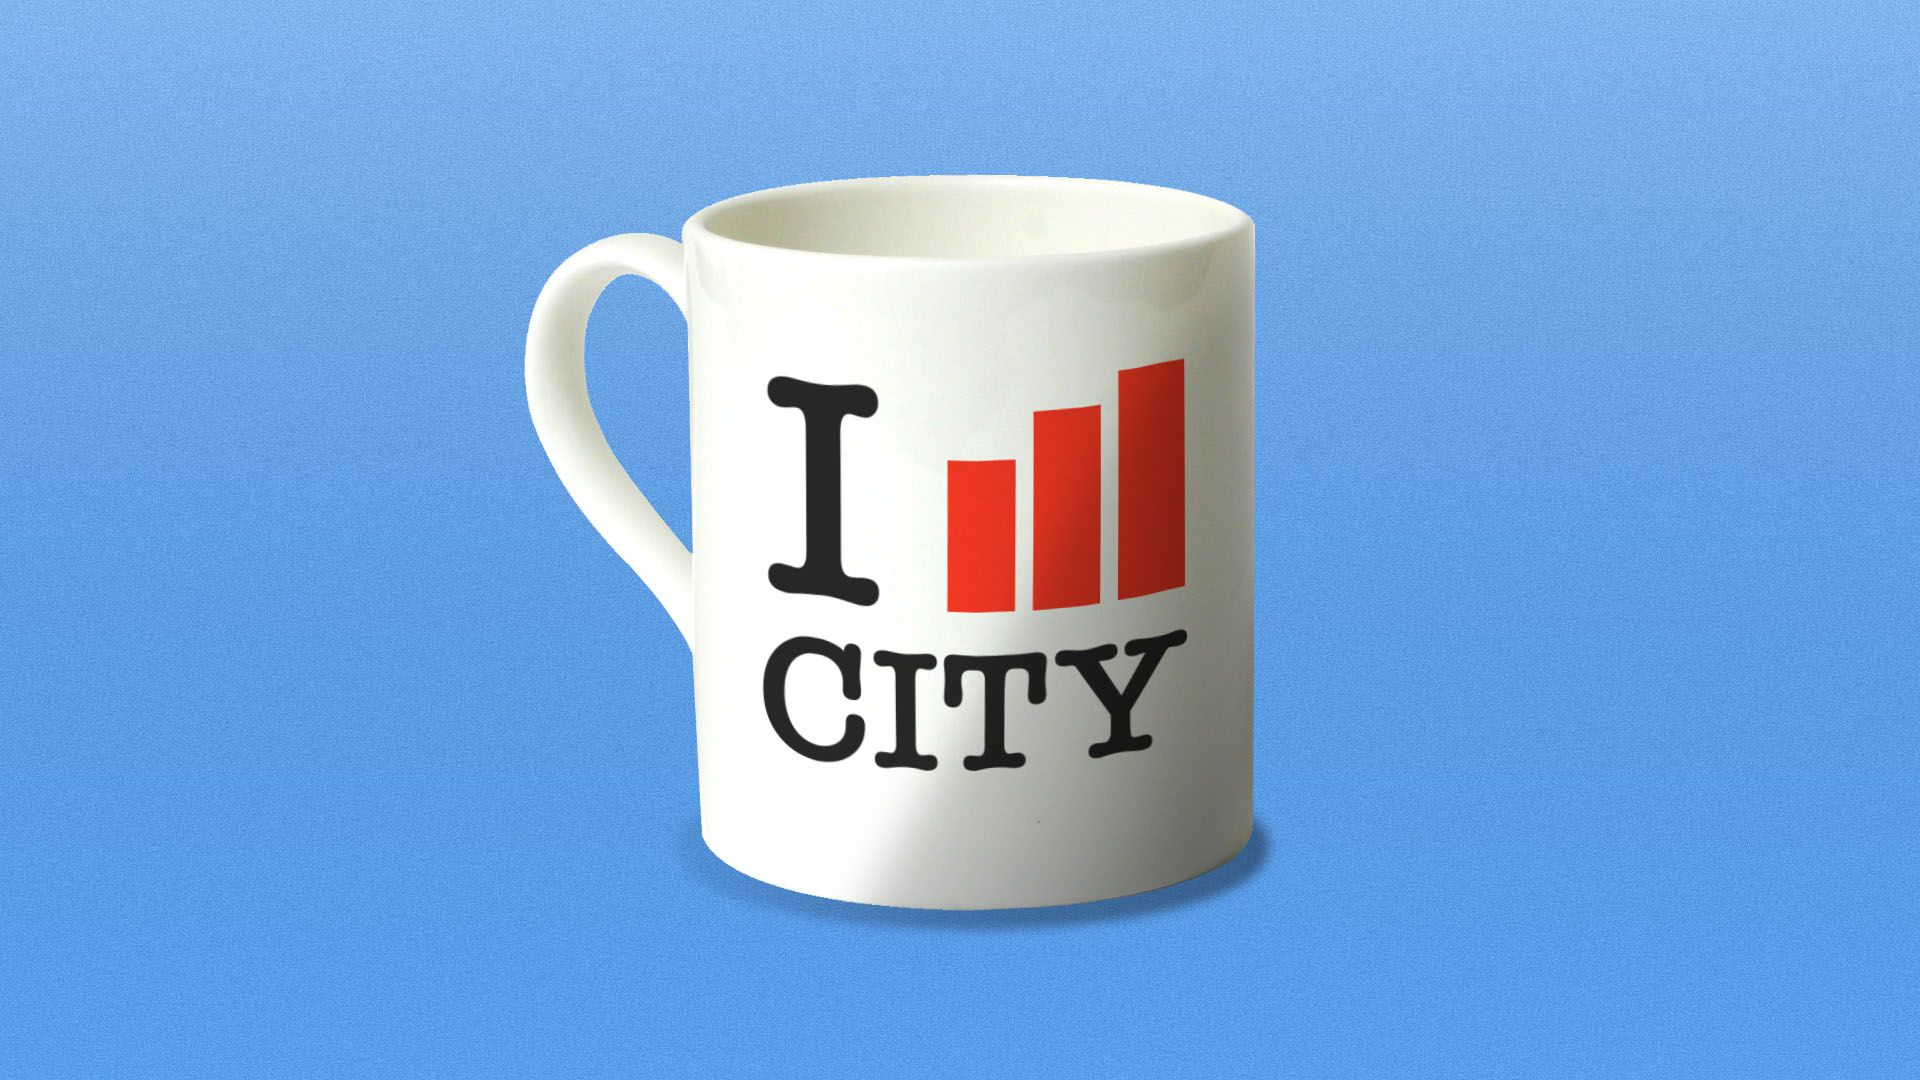 """Illustration of an iconic """"I heart city"""" mug with a bar graph in place of the heart"""